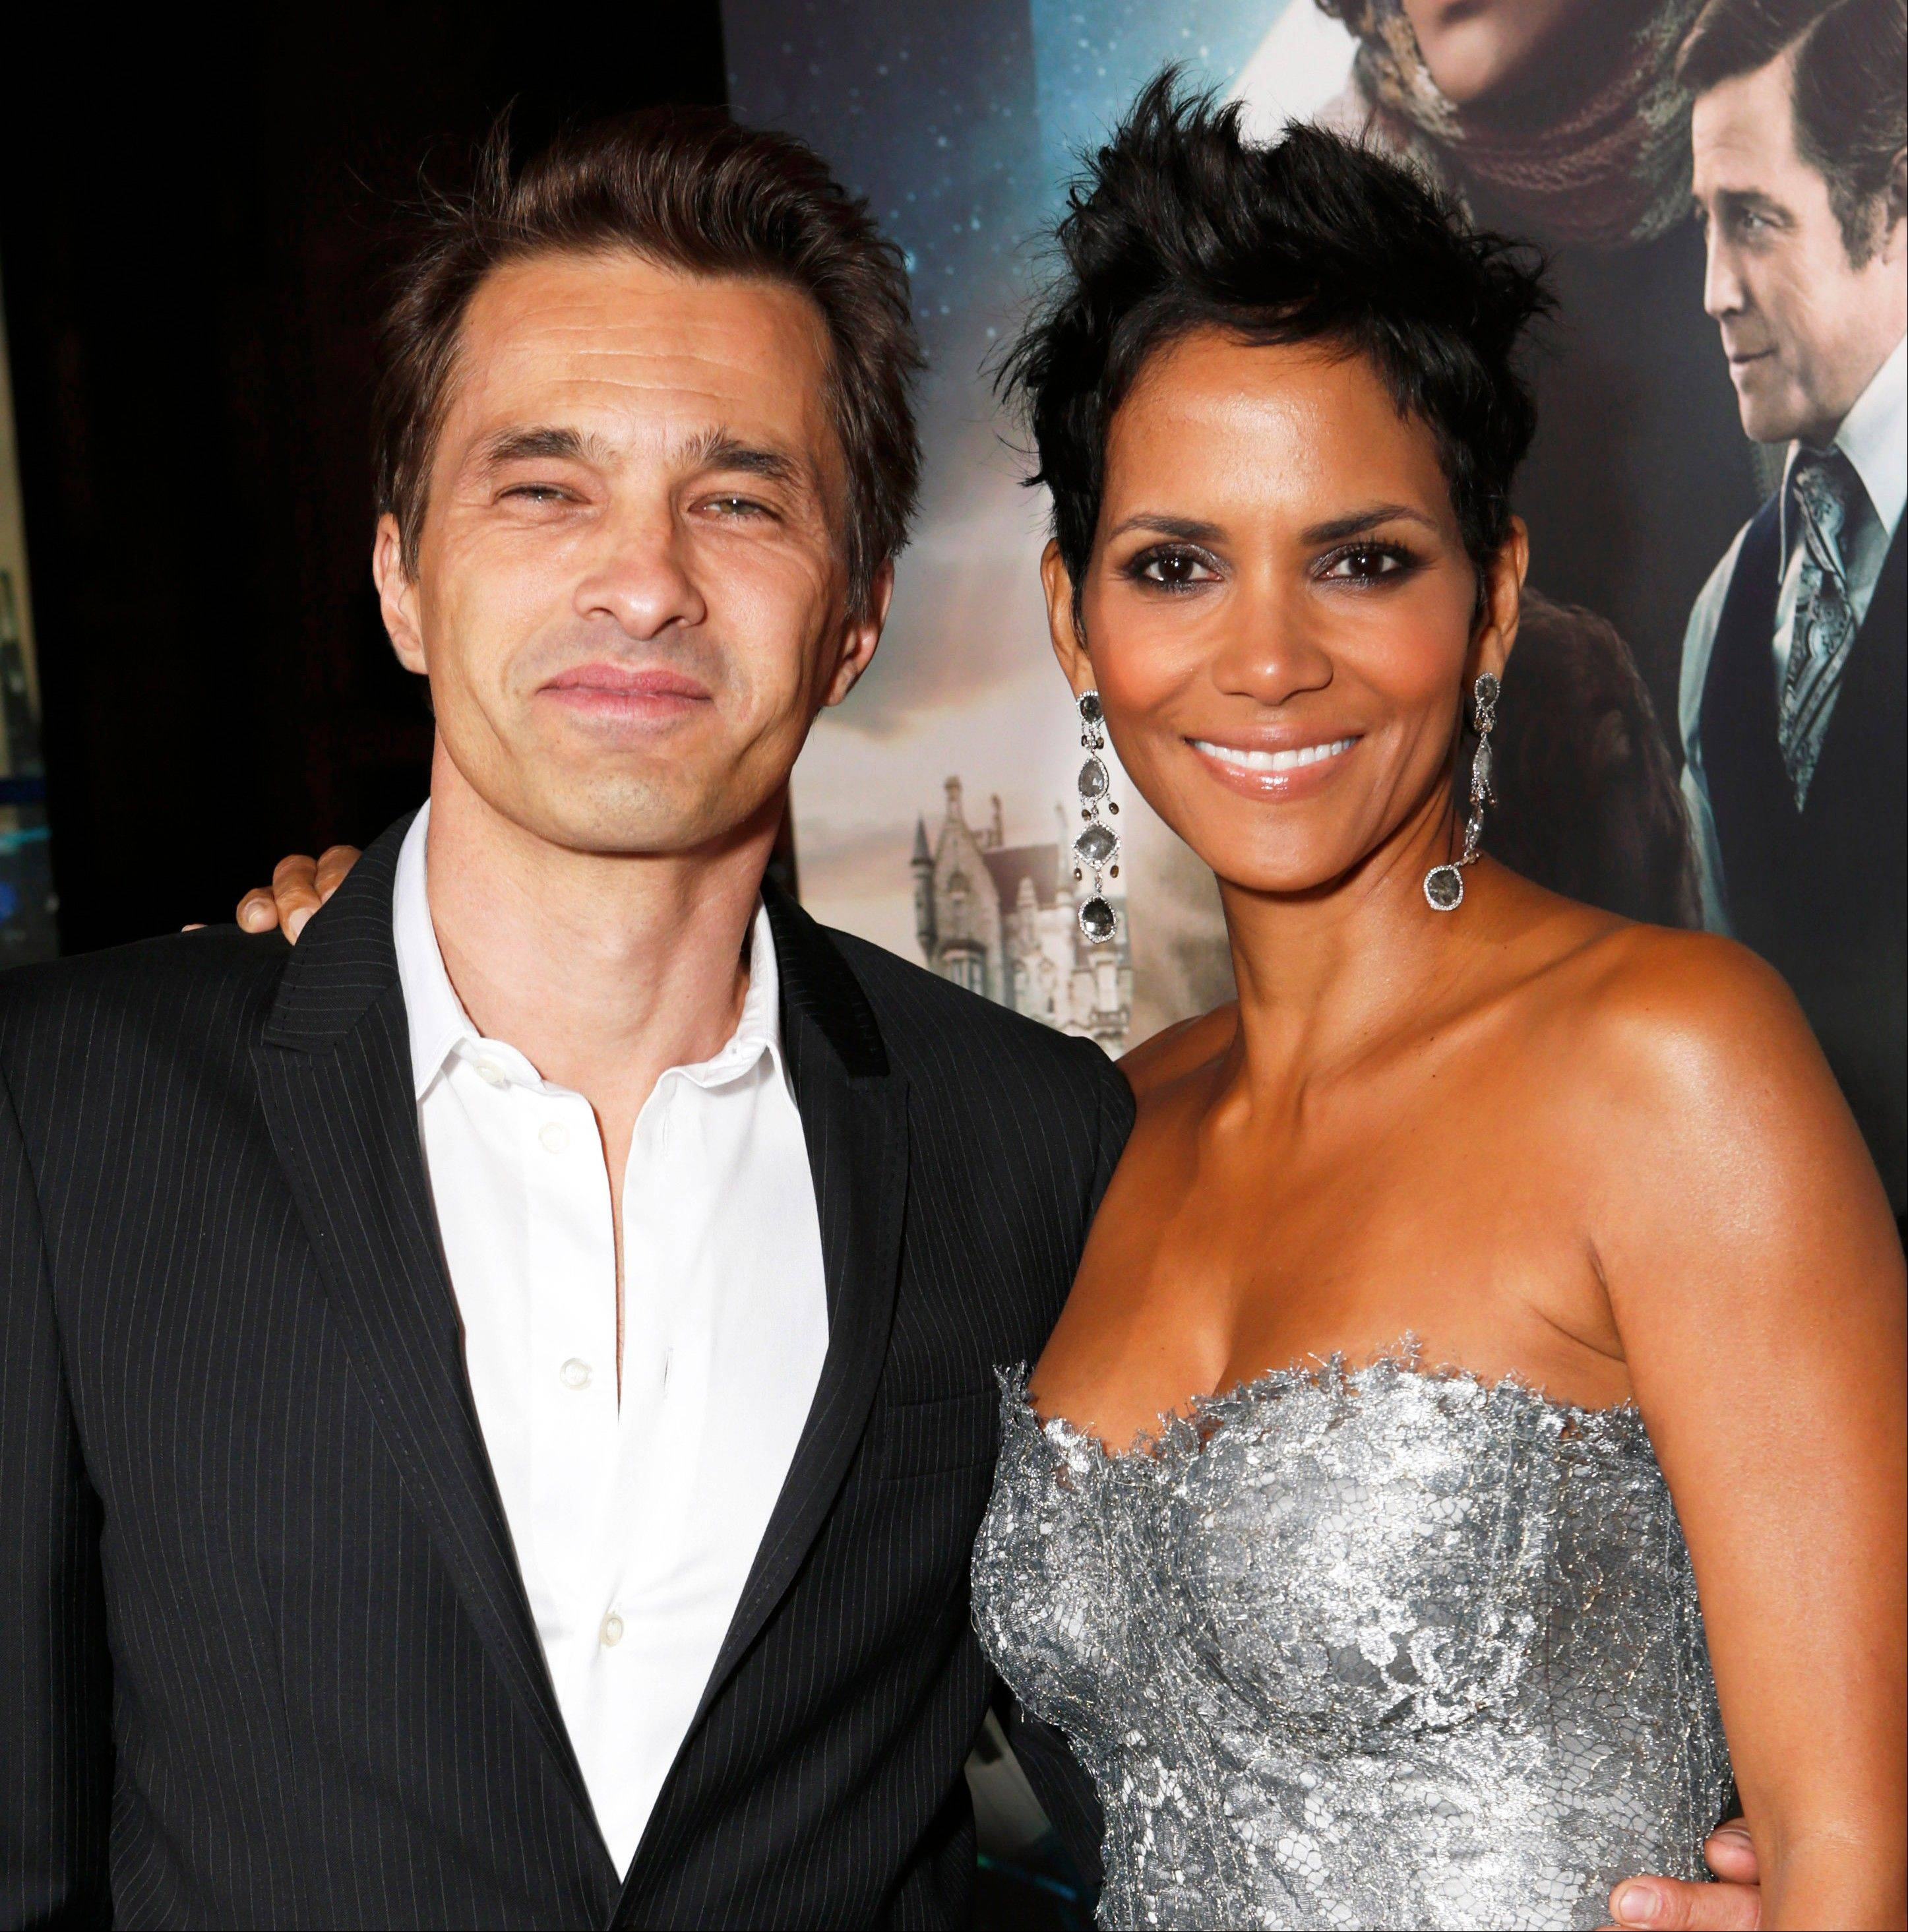 Actors Olivier Martinez and Halle Berry married at a weekend ceremony in a church near a chateau in France�s Burgundy region. The owner of the Chateau de Vallery, where the couple stayed with their 60 guests, said on Sunday that the betrothal a day earlier ended with a dinner and fireworks display.